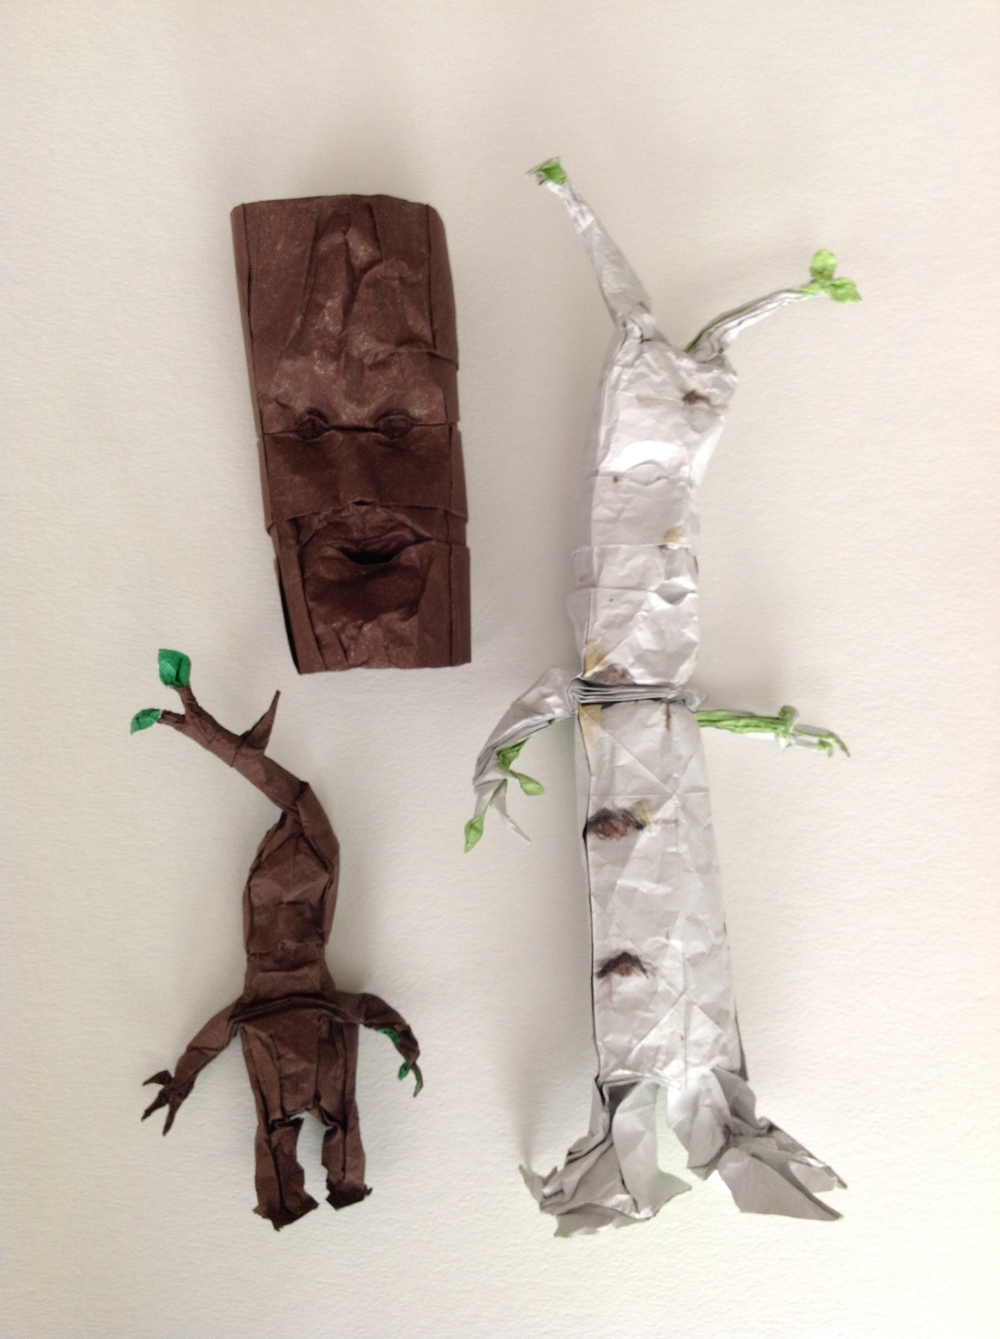 Each of these figures was inspired some of my favorite fictional characters and creatures such as J.R.R. Tolkien's ents, the dynamic emotions of Inside Out, or exotic praying mantids found in nature.     Each study was folded from a single uncut sheet of tissue foil. Designed and folded by Blake Derksen.